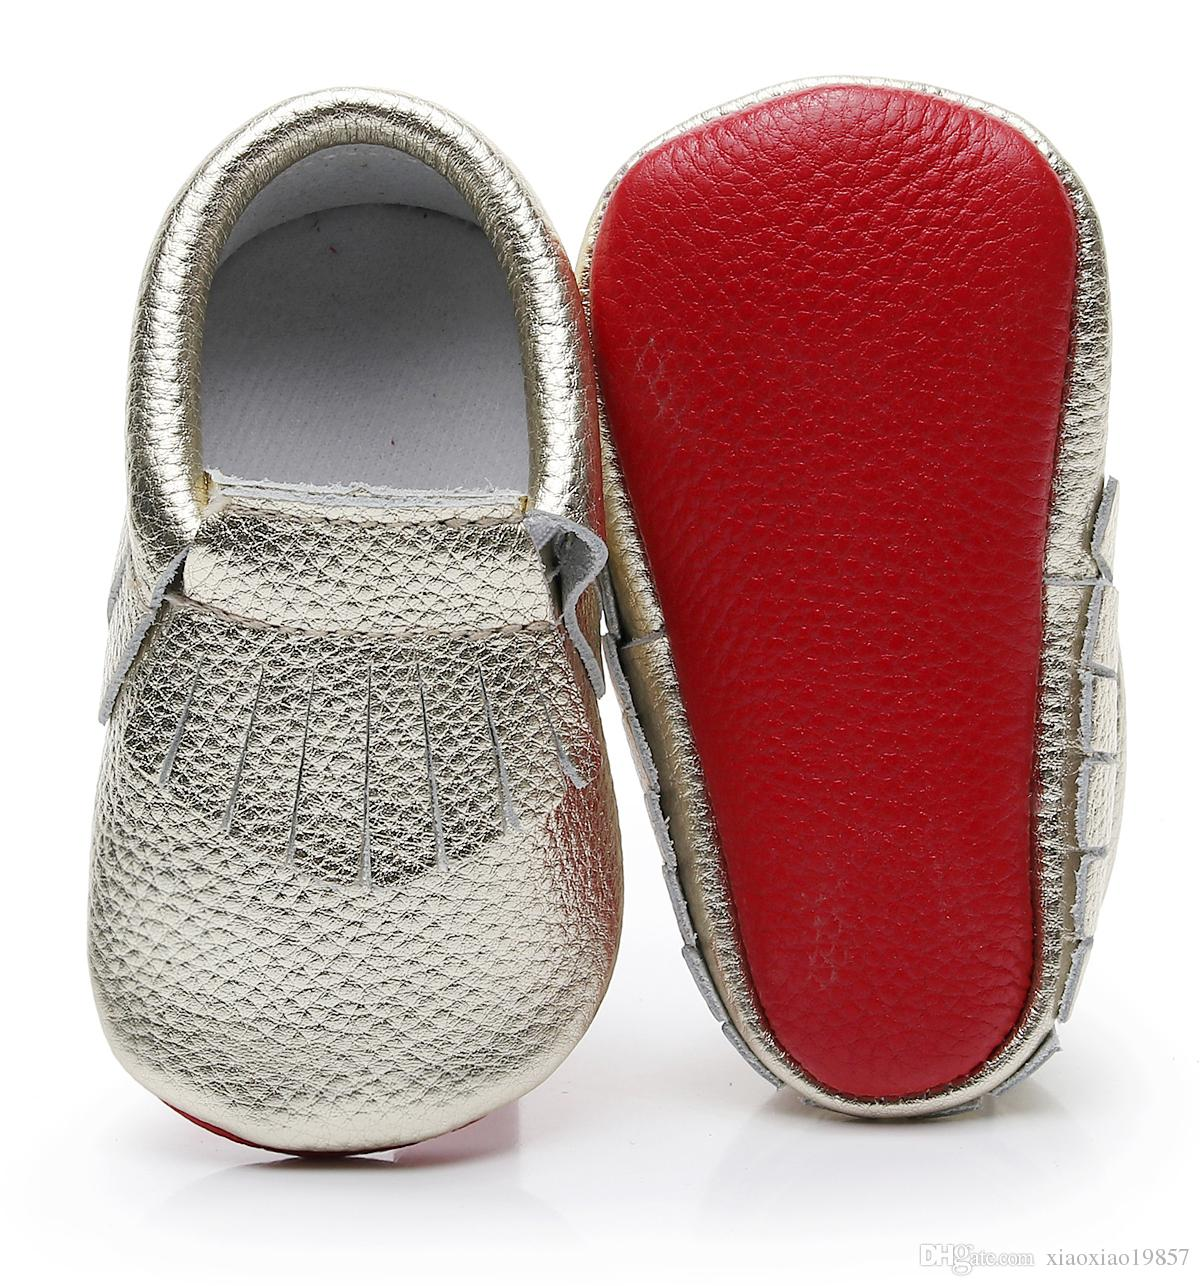 fbd2d05a75fc 2019 HONGTEYA Genuine Leather Baby Moccasins Red Sole Newborn First Walker  Shoes Cute Fringe Infantil Baby Boy Girl Shoes Boots From Xiaoxiao19857